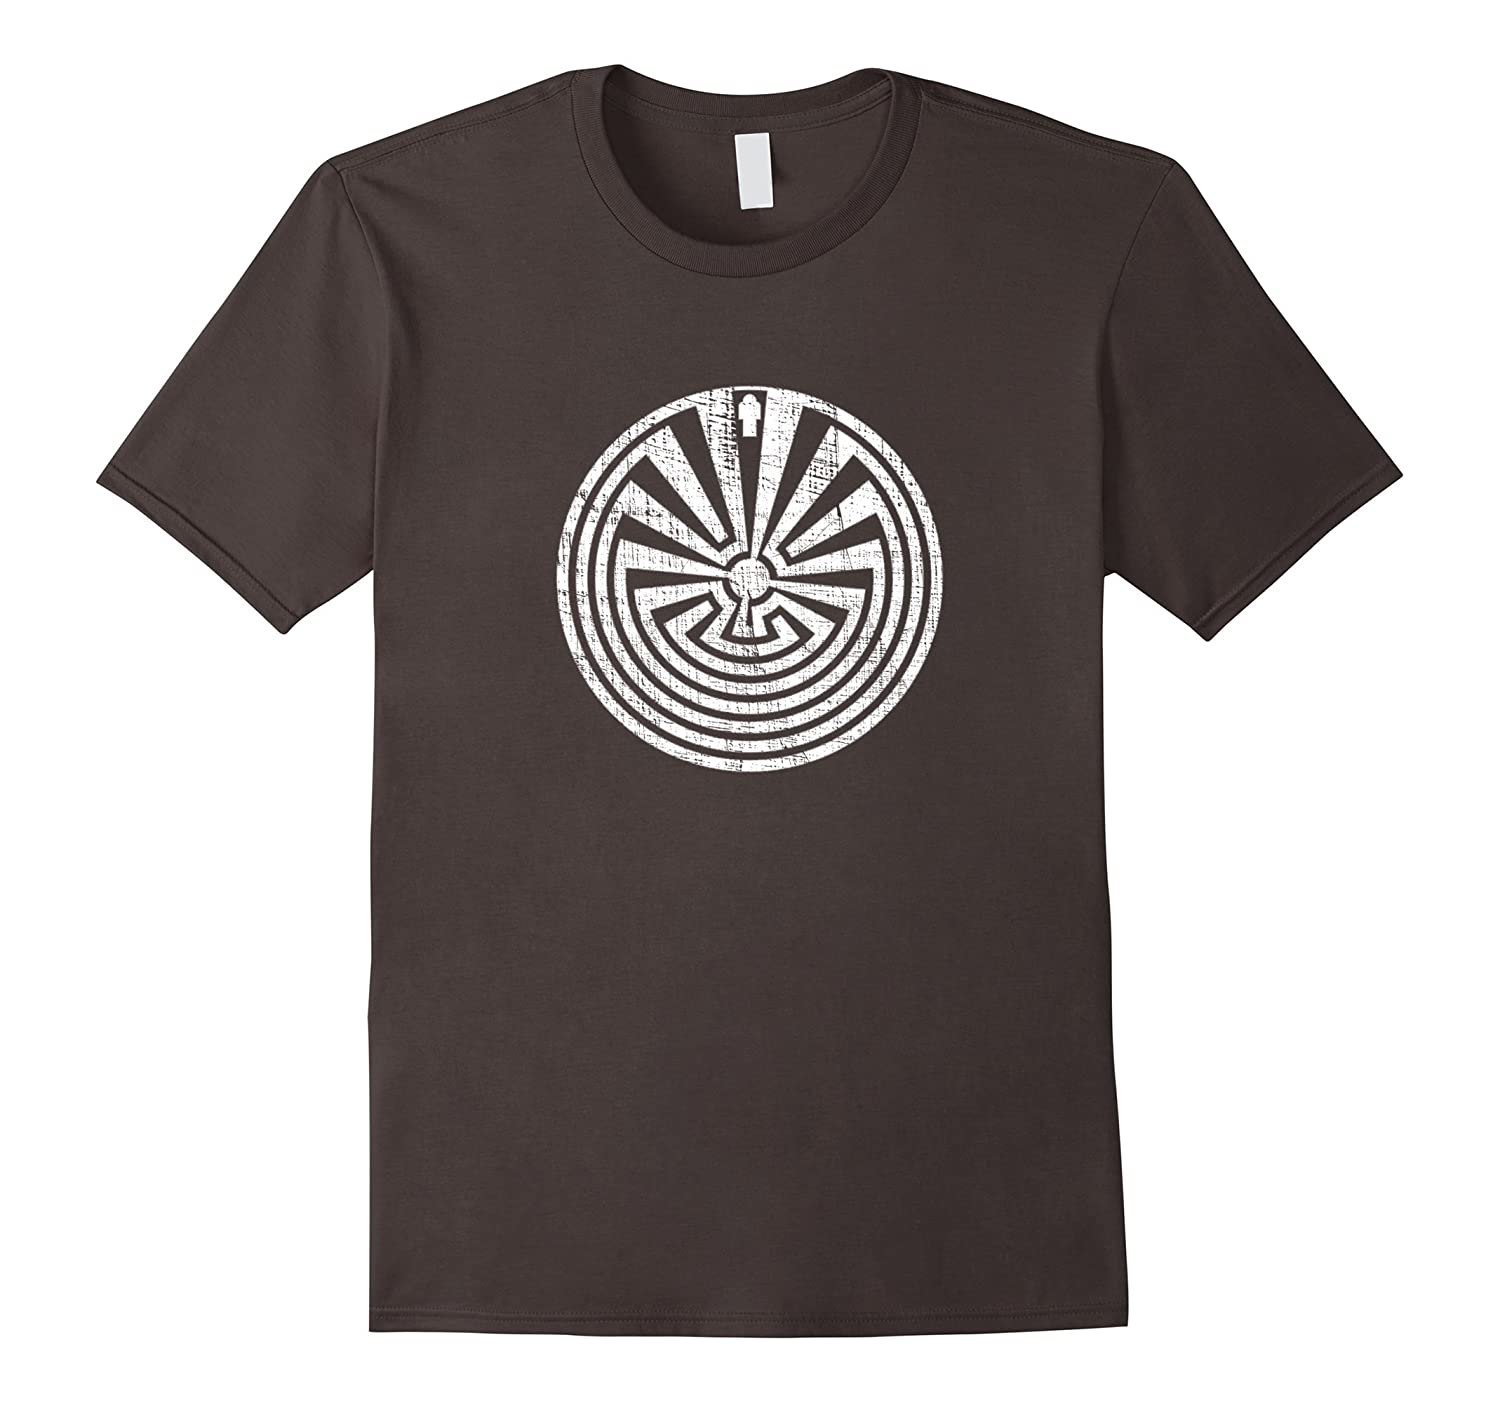 Amazon Man In The Maze T Shirt For Men Women And Kids Clothing